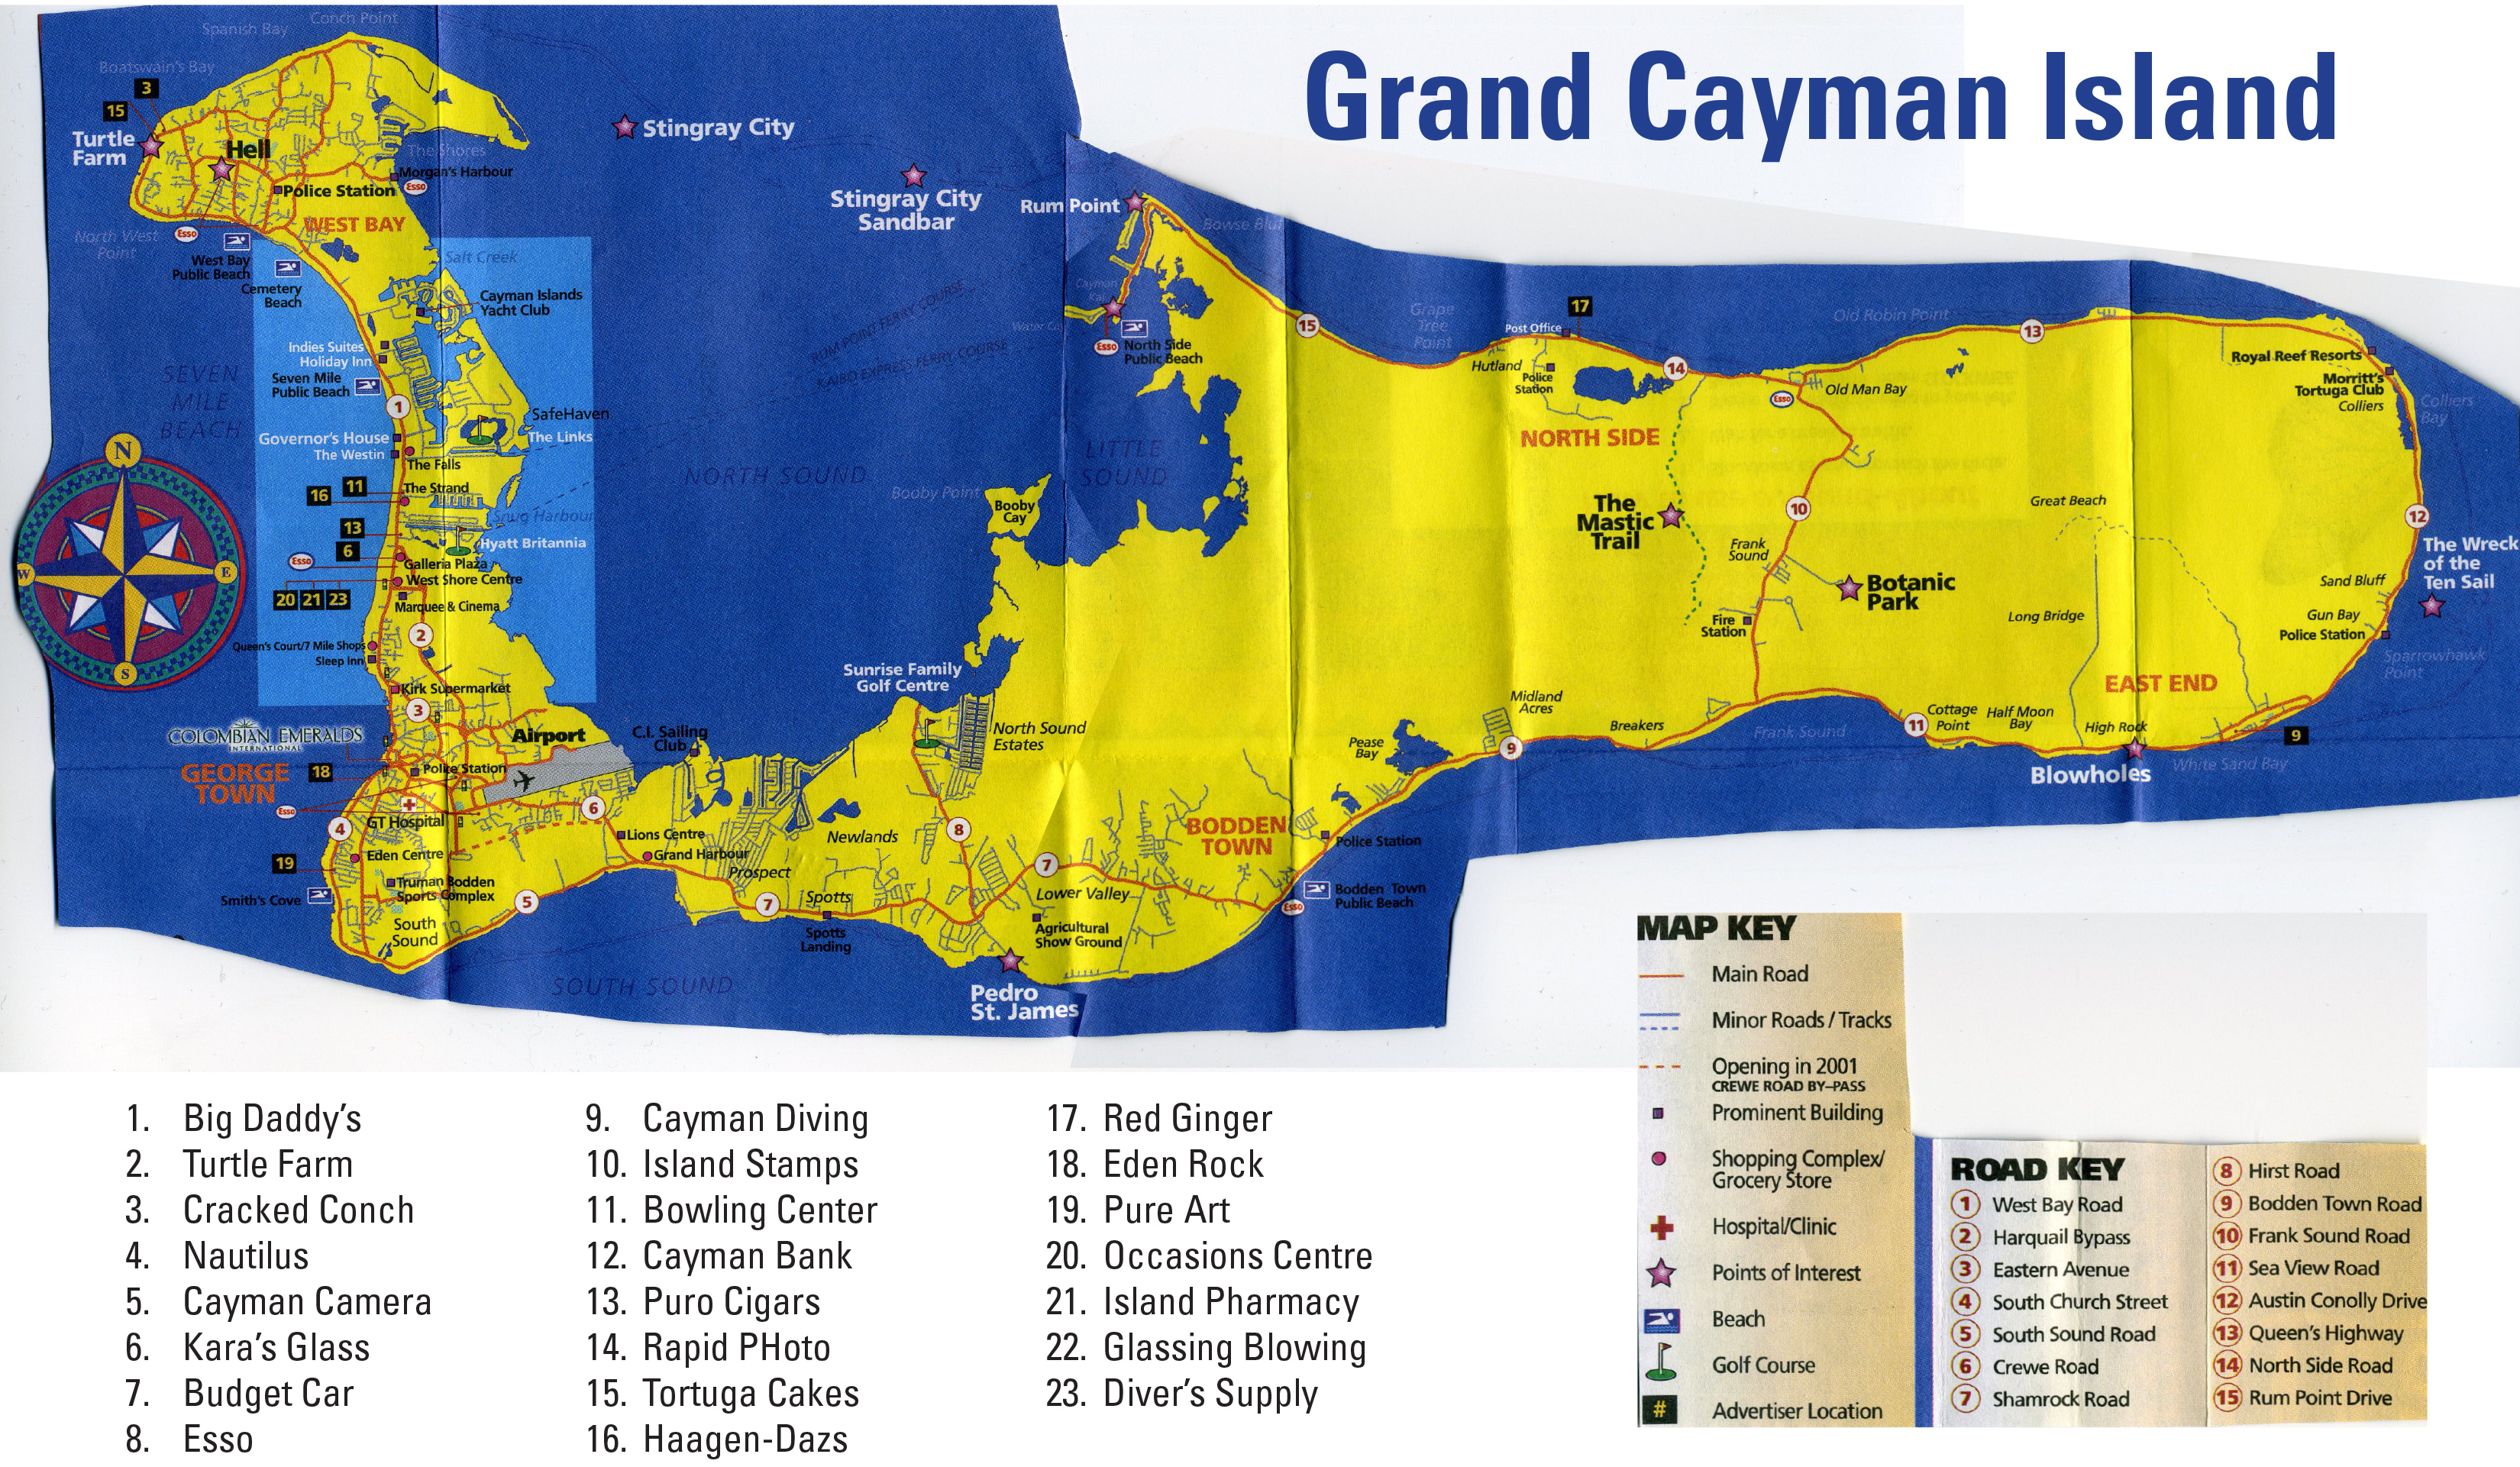 Cayman National Bank Cayman Islands